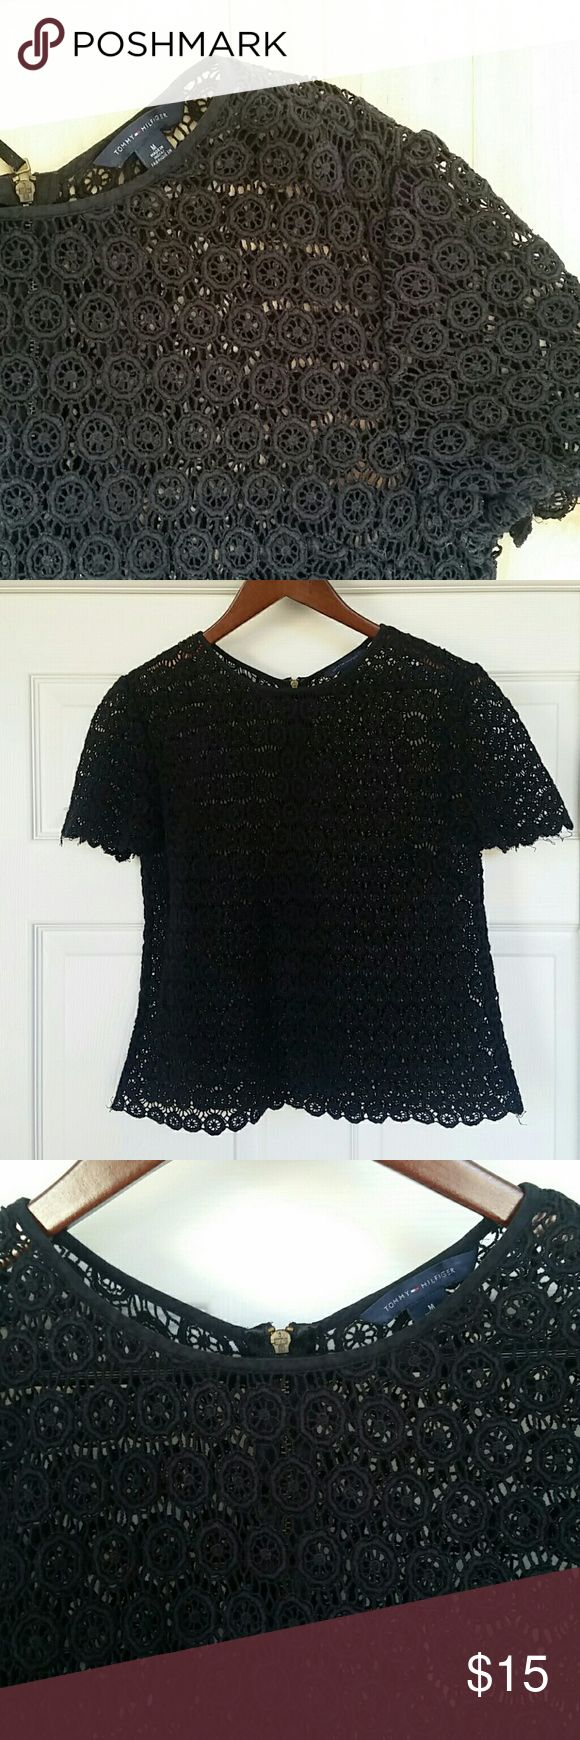 Tommy Hilfiger Crochet Knit Black Top This gorgeous Tommy Hilfiger top is perfect for the spring. More crop top then full, it would work great over a bathing suit during the day or dressed up for a night out. Has a quarter zipper in the back. Tommy Hilfiger Tops Crop Tops